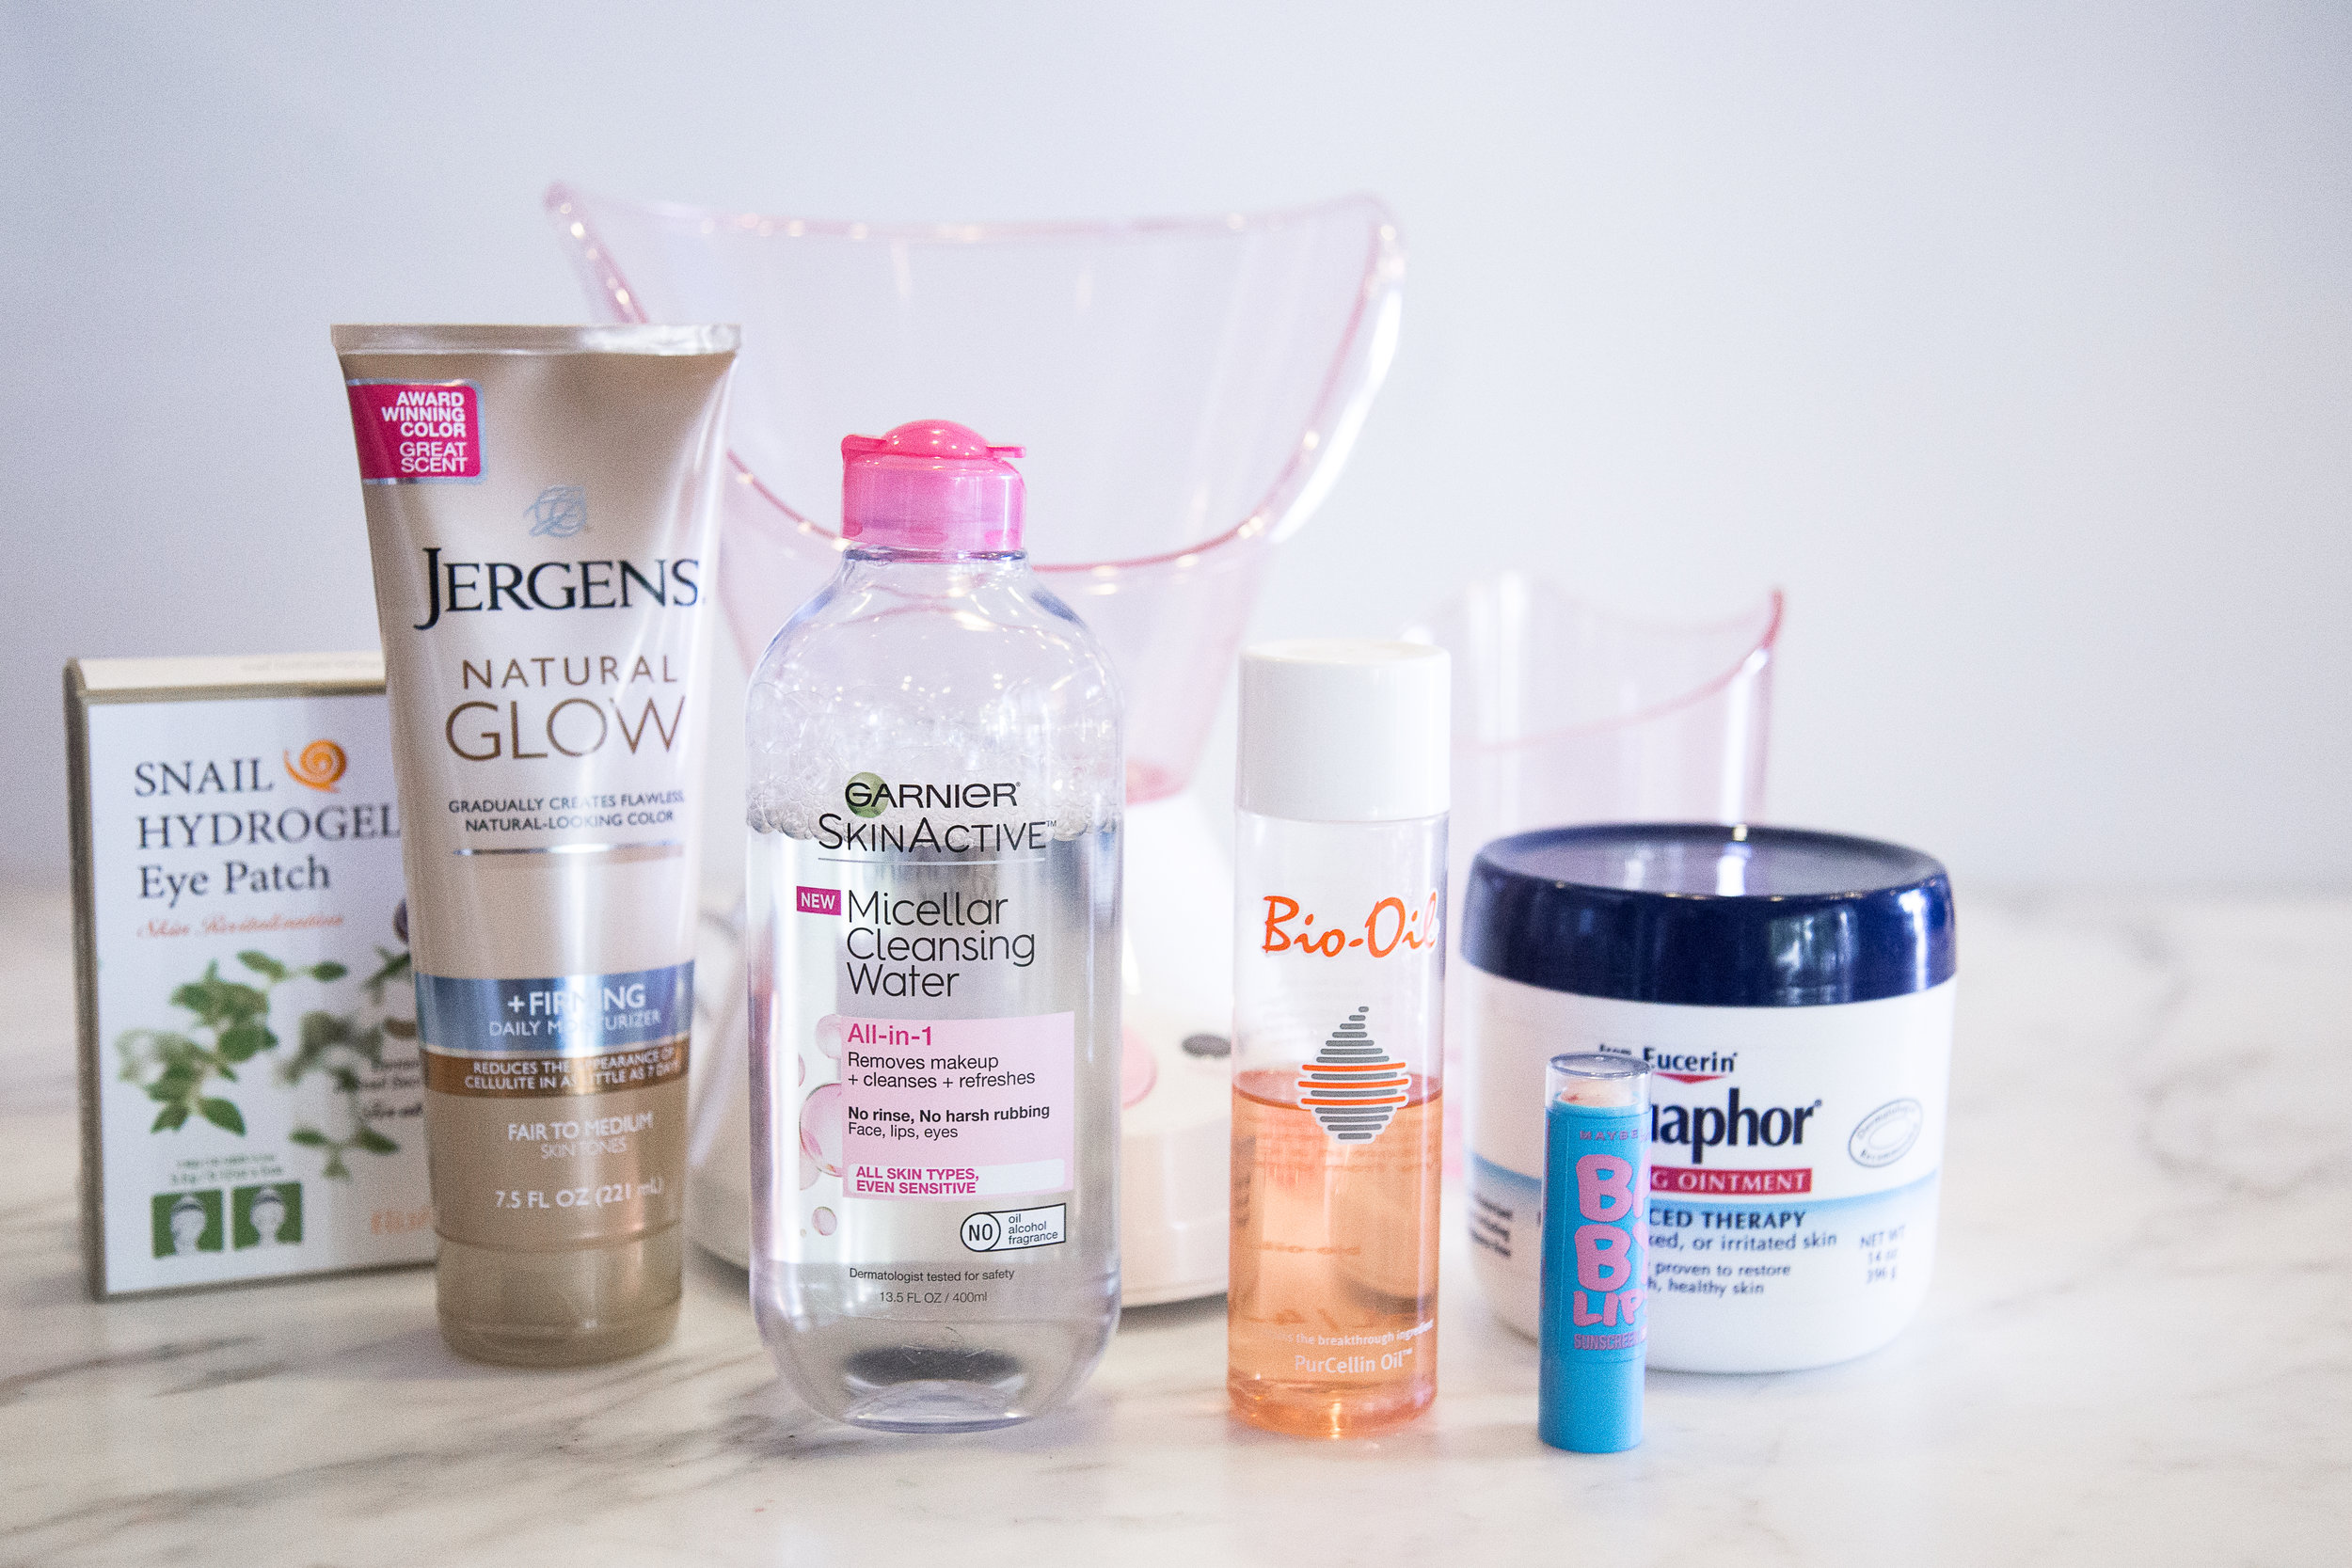 Drugstore Spa Day Products Photography: Erica Hampton